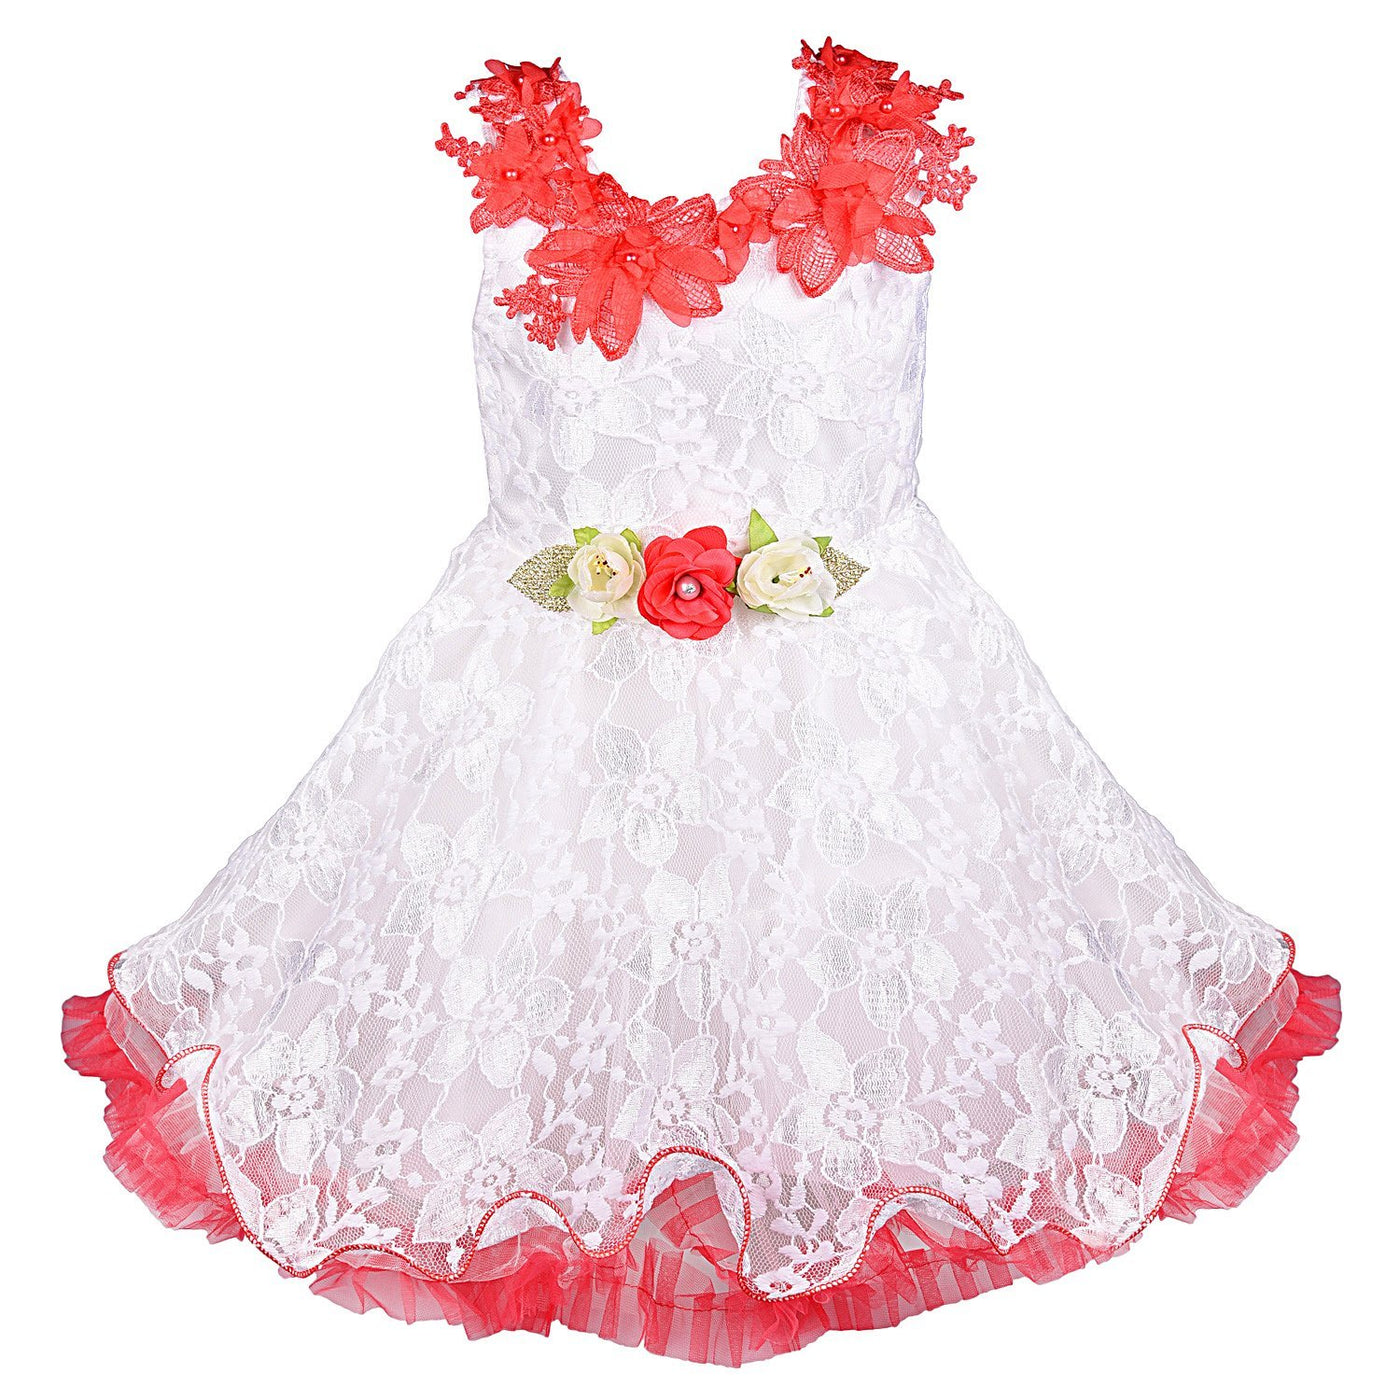 47f302b05 baby girls Frock Dress DN bx40wrd - Wish Karo Dresses ...